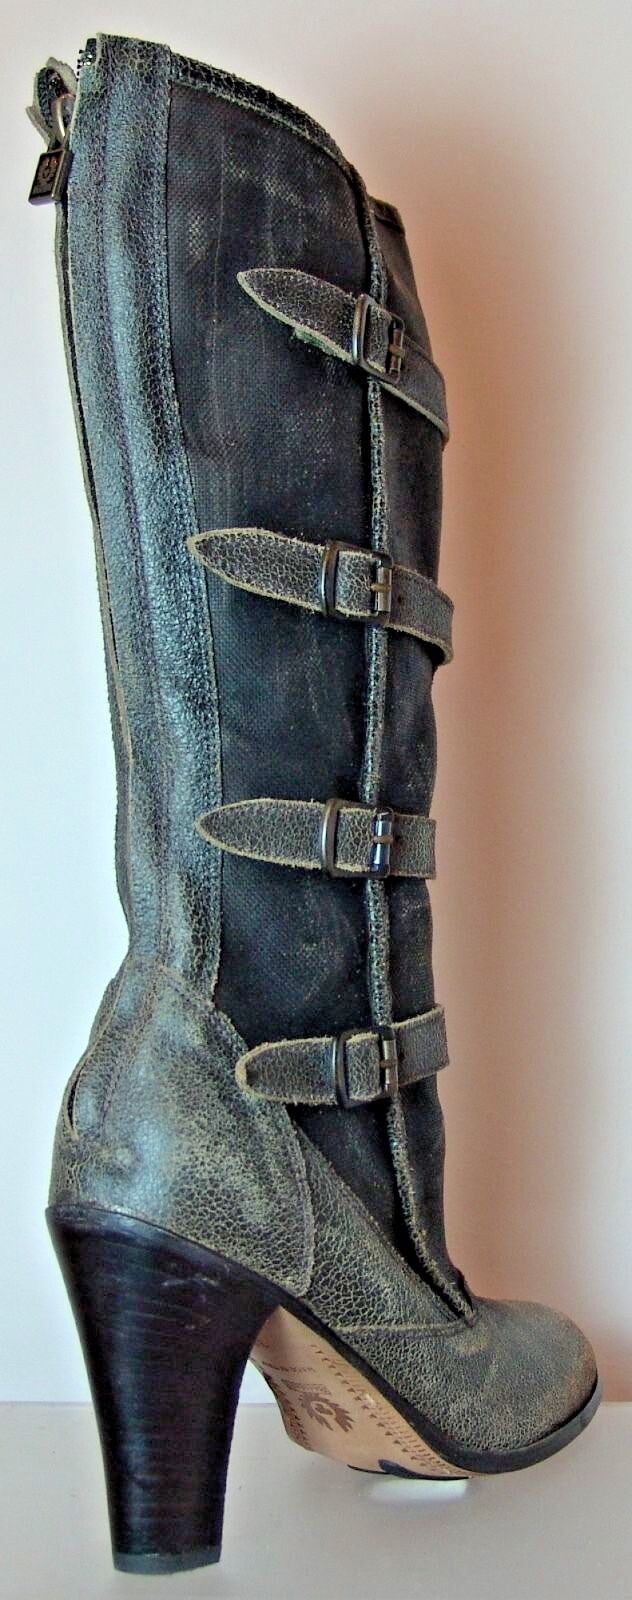 Belstaff Leather & Waxed Canvas Canvas Canvas Buxton Boots shoes EU Size 40 Made In  7bc9fe